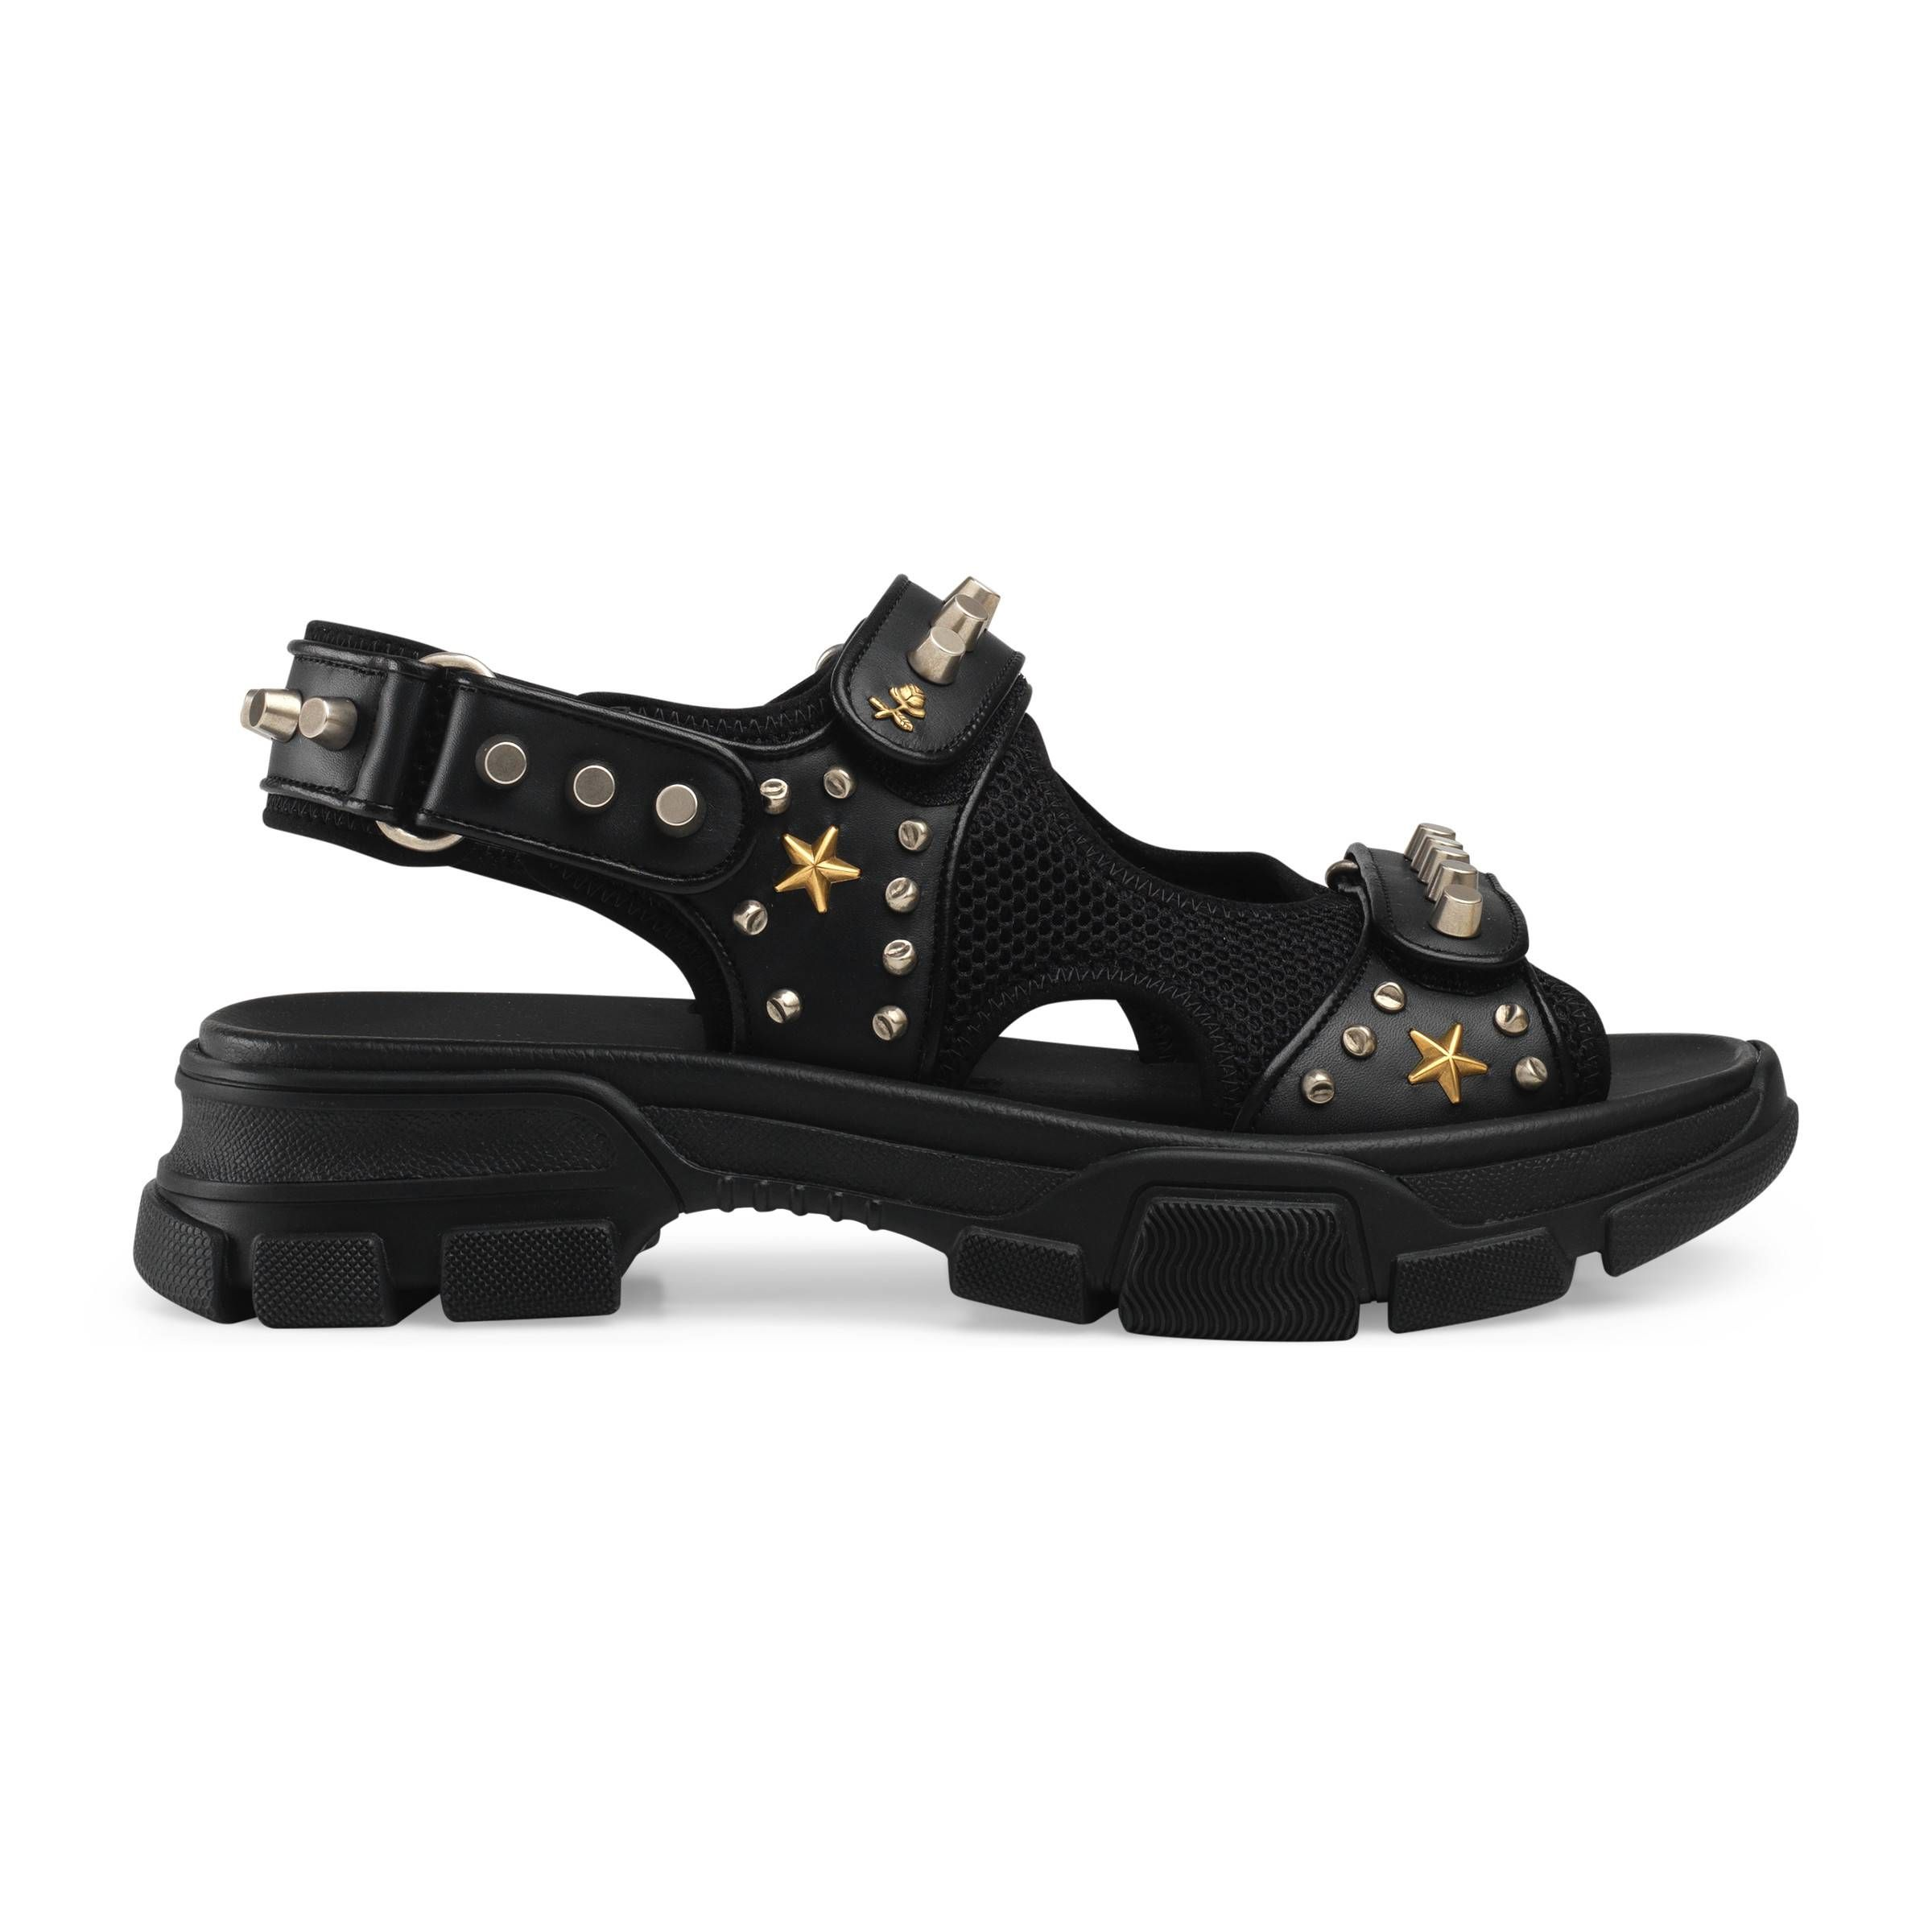 Leather And Mesh Sandal With Studs In Black Gucci Men Shoes Gucci Leather Studded Sandals